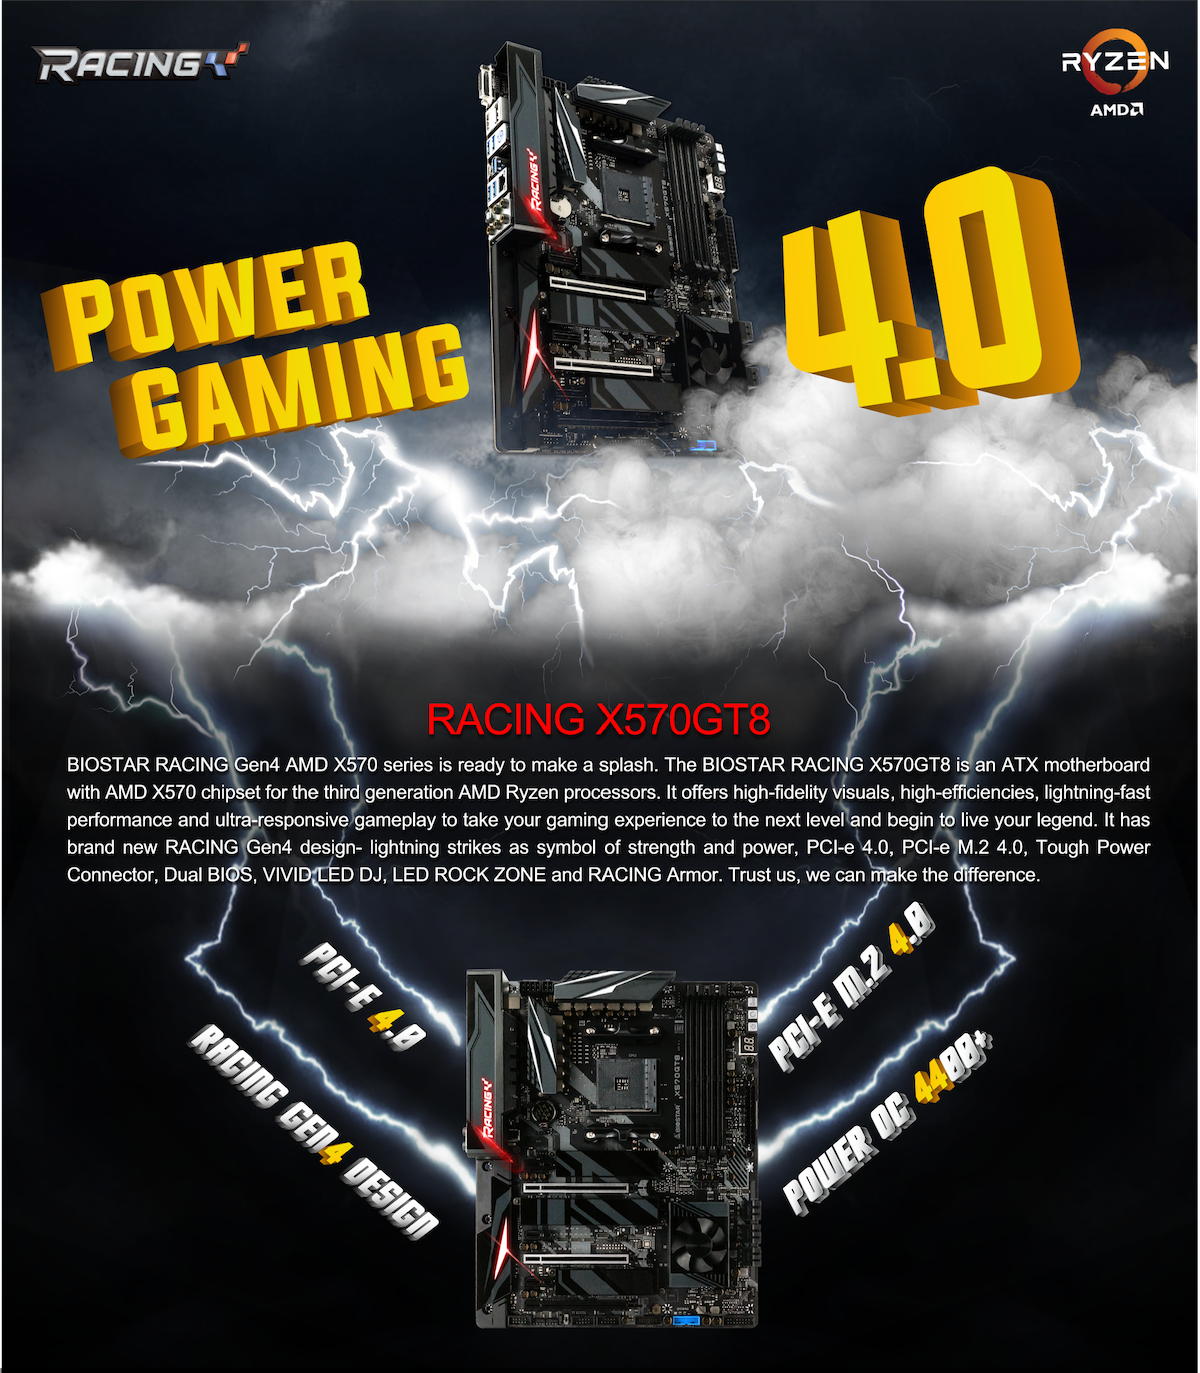 RACING-X570GT8_overview_01.png